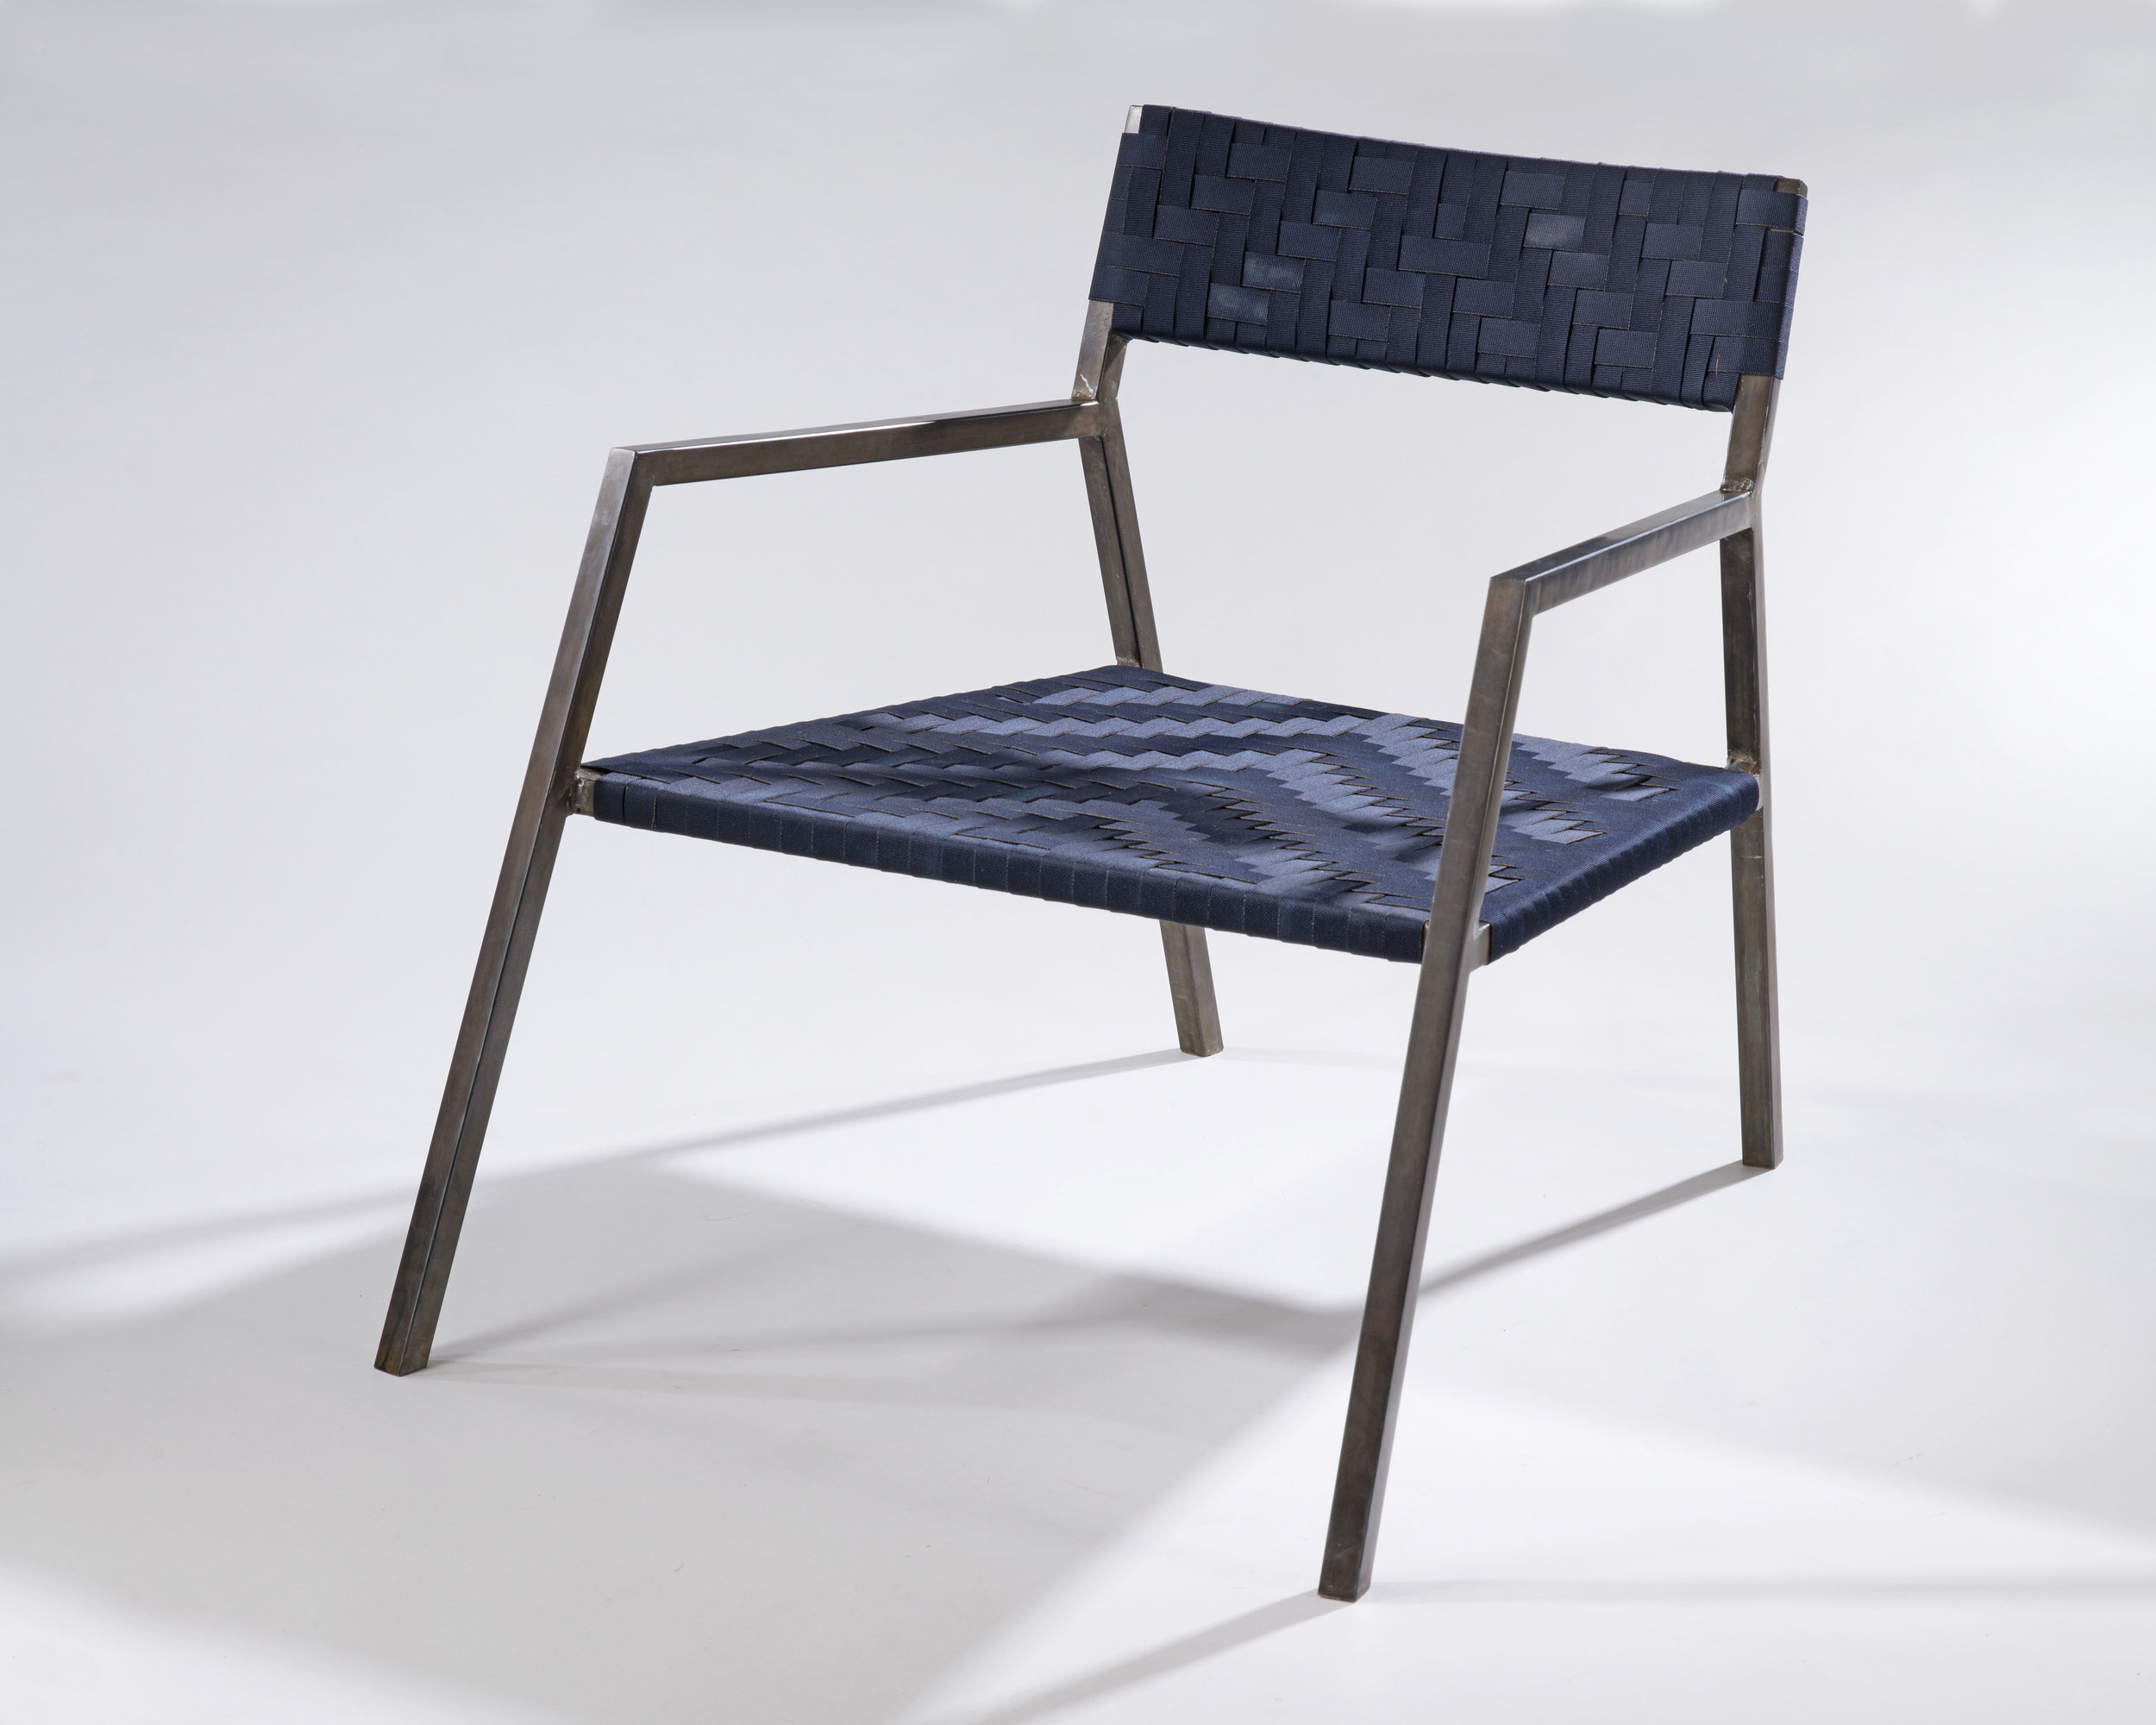 modern steel chair design rattan swing woven seats julia steketee these integrate traditional shaker tape weaving patterns with a metal the cotton and nylon webbing is hand dyed